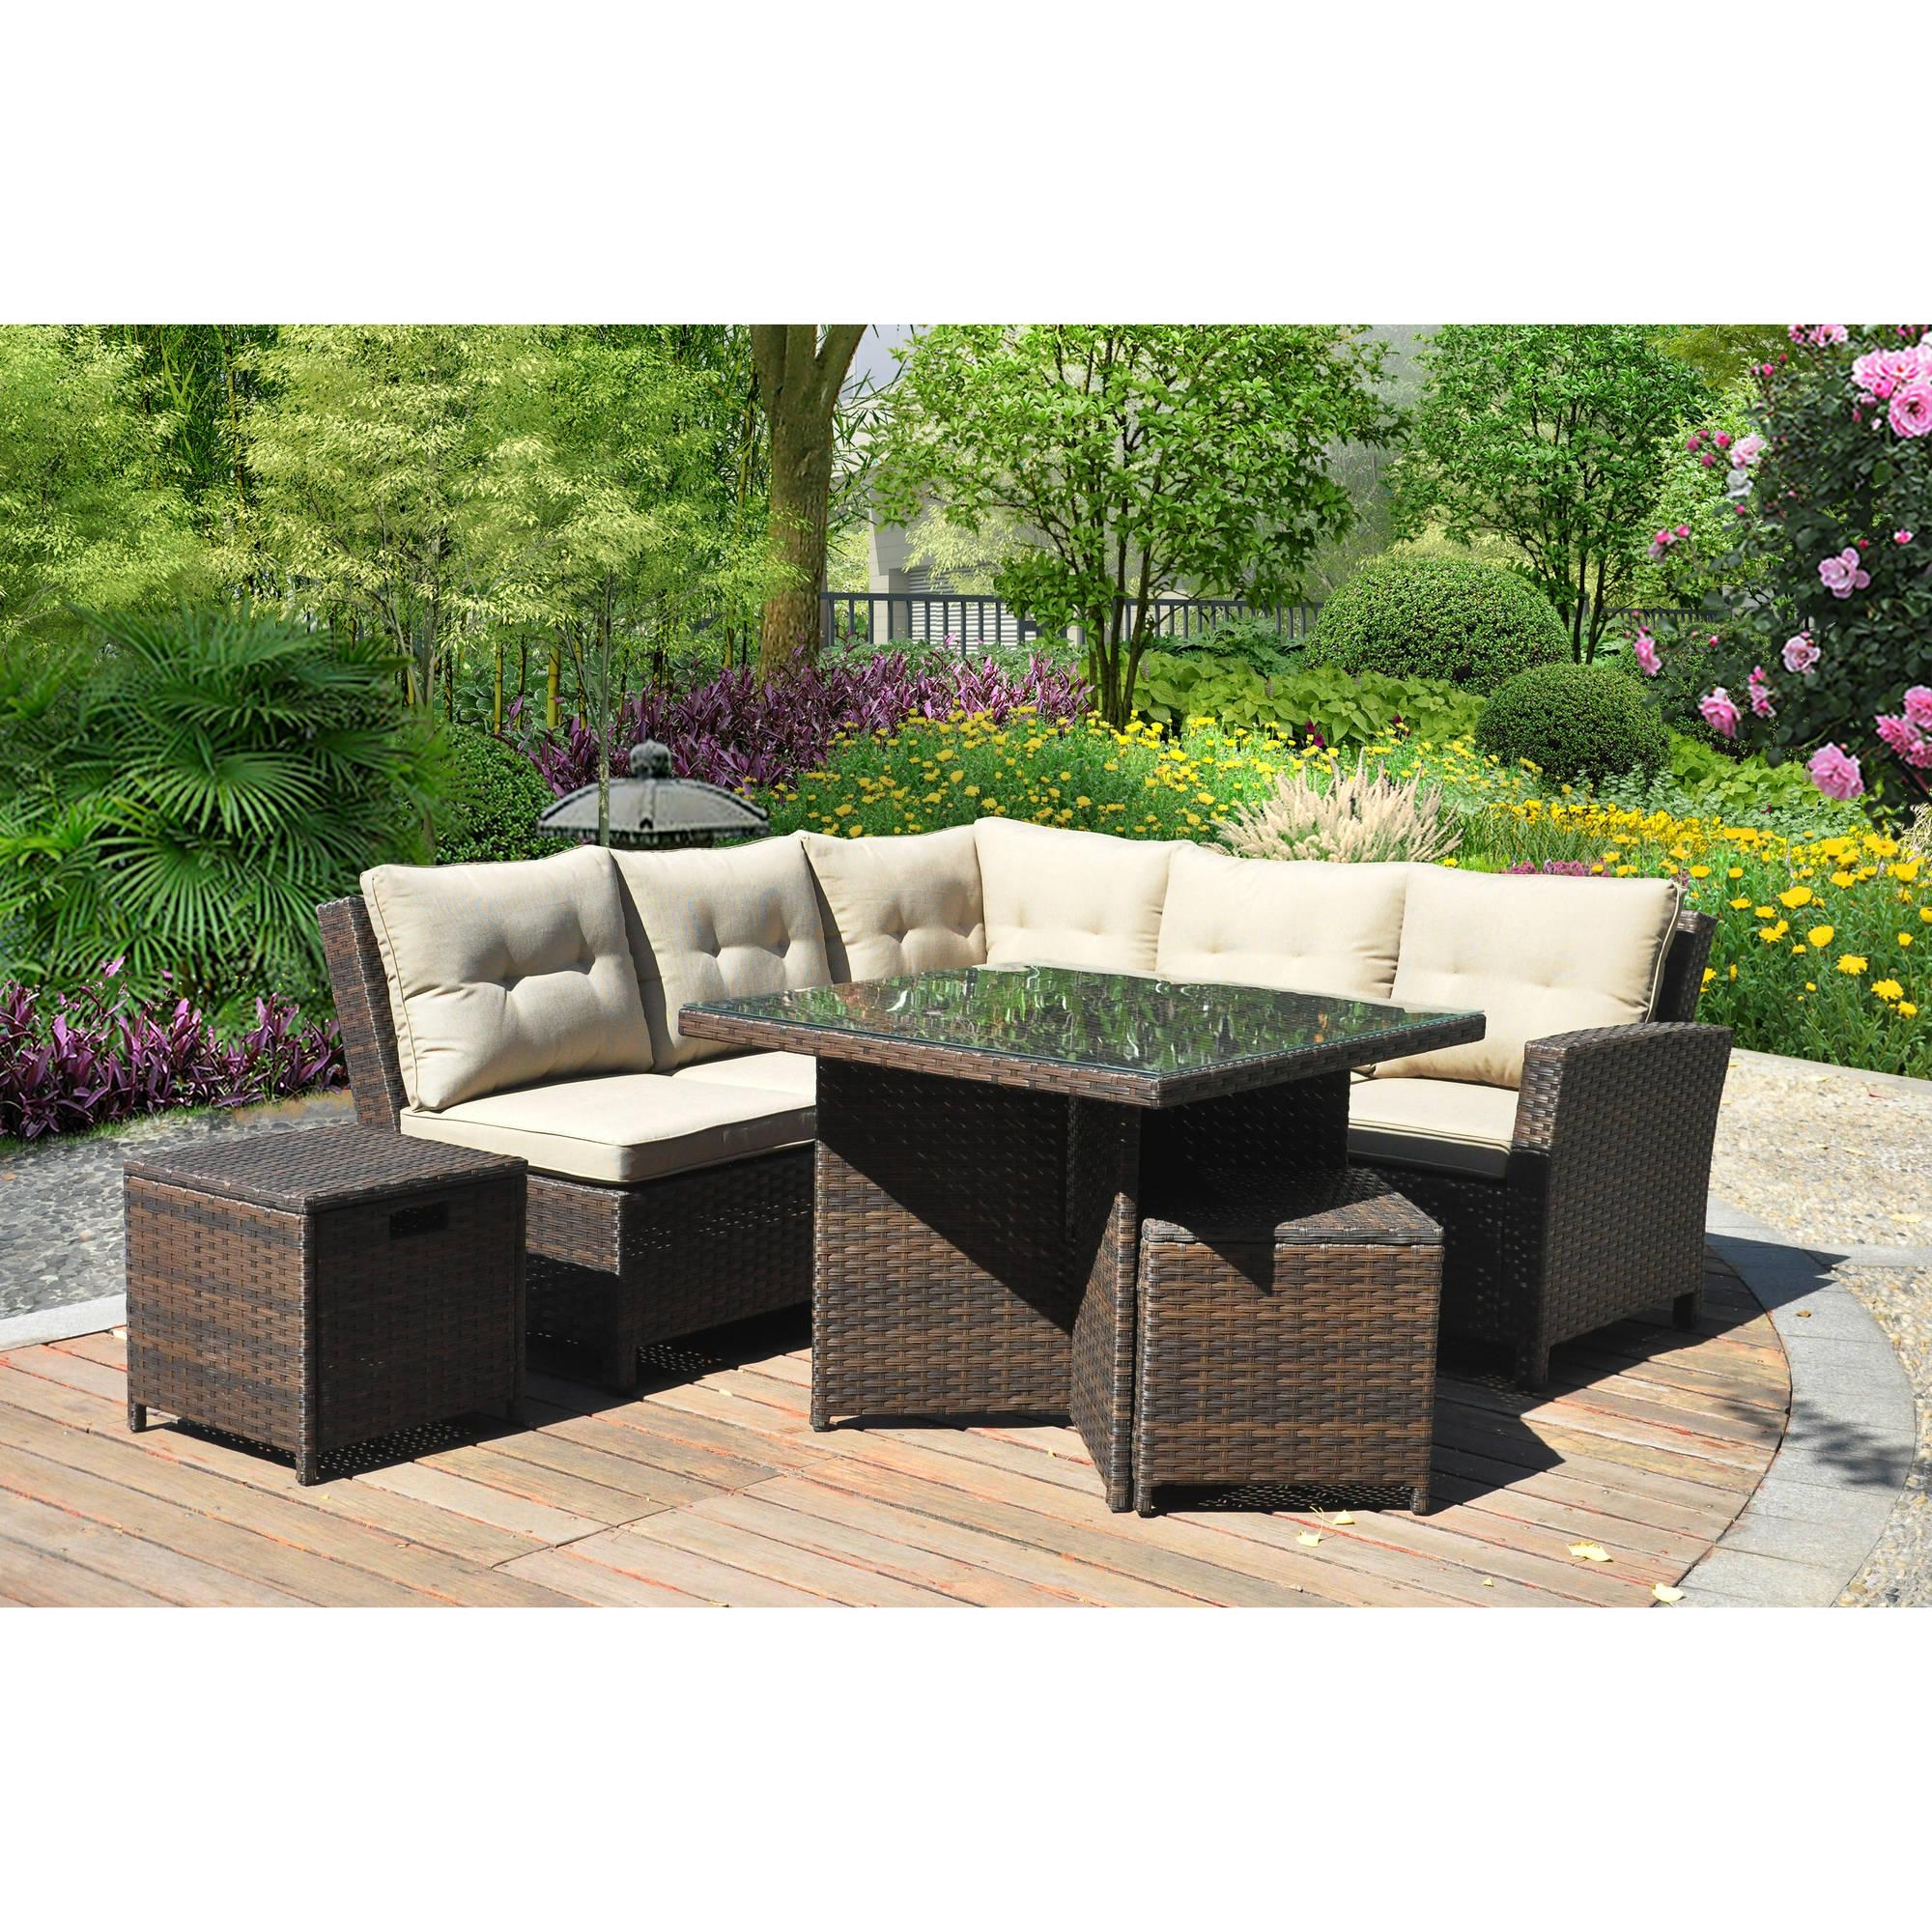 Costway 6 Pcs Outdoor Patio Rattan Wicker Sectional Furniture Set In Patio Sofa Tables (Image 7 of 20)